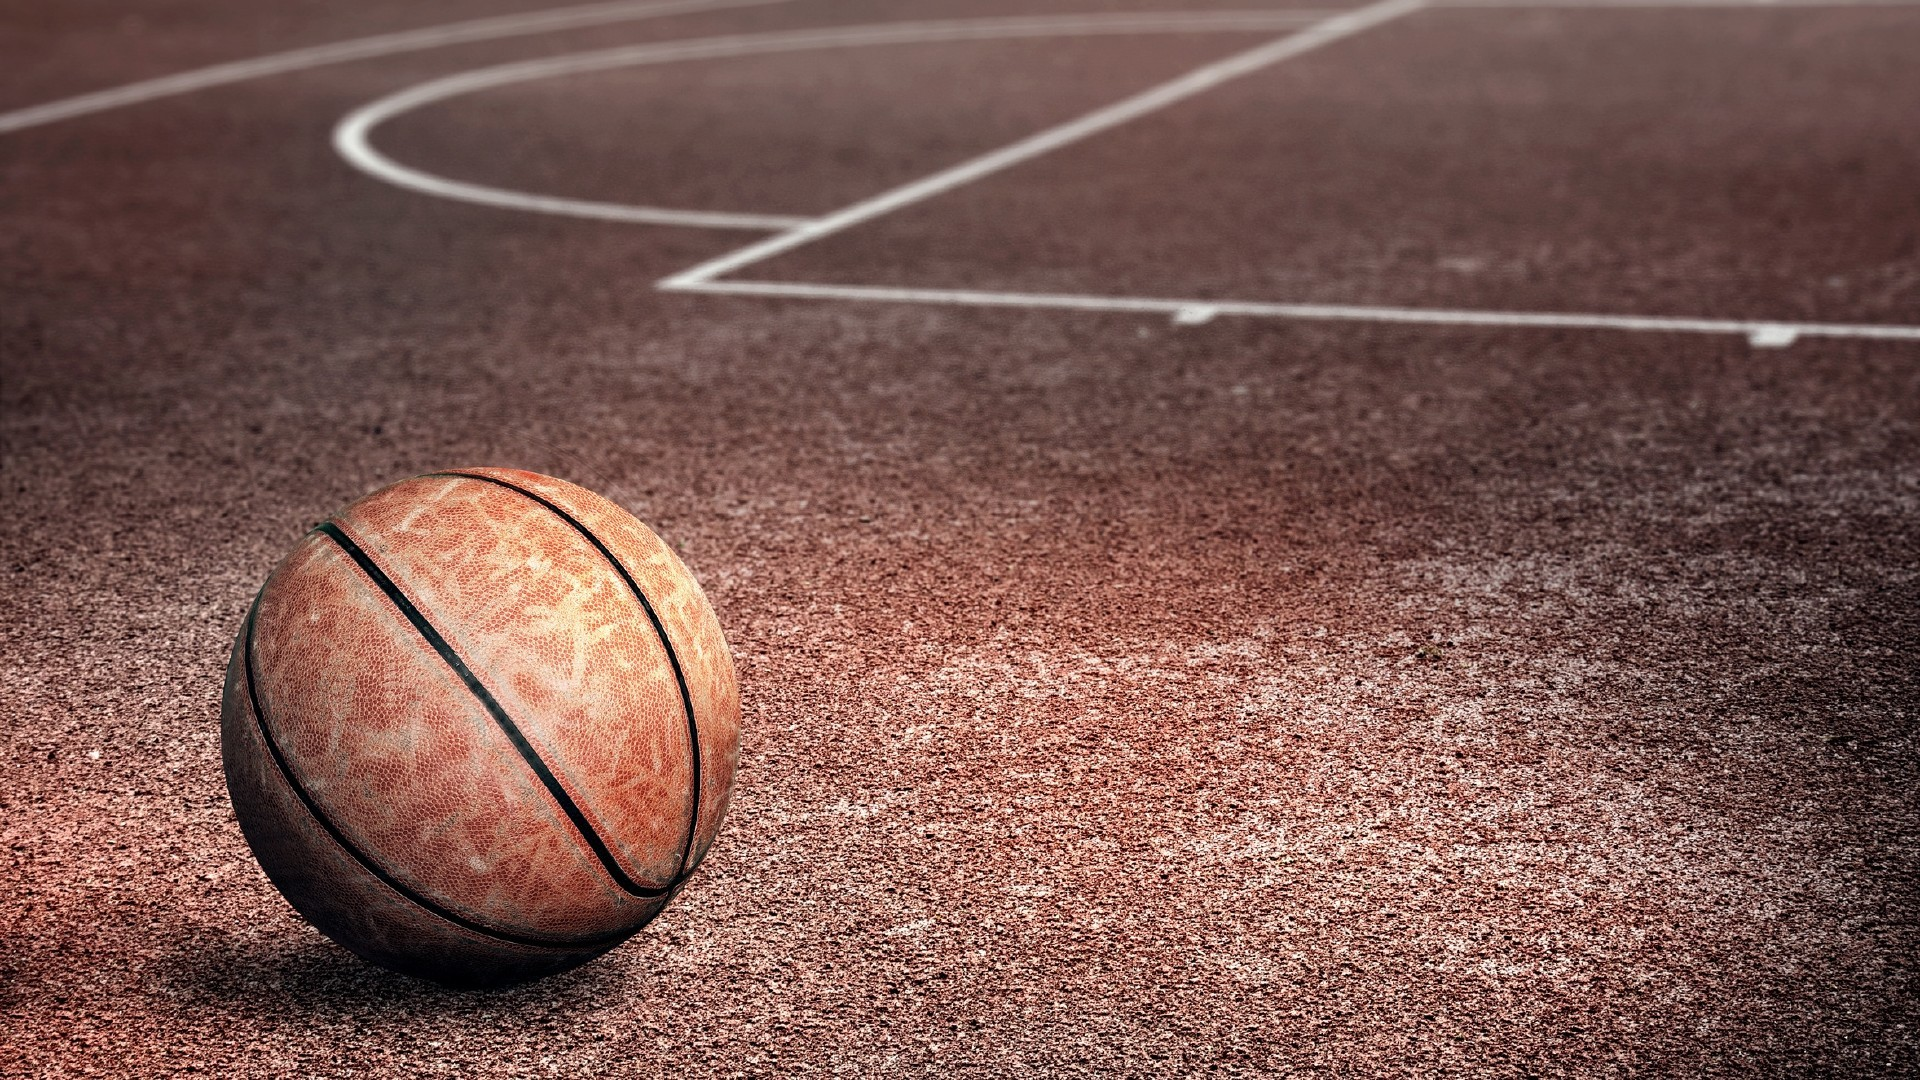 Simple Wallpaper Home Screen Basketball - 124867-basketball-backgrounds-1920x1080-photo  Graphic_48259.jpg